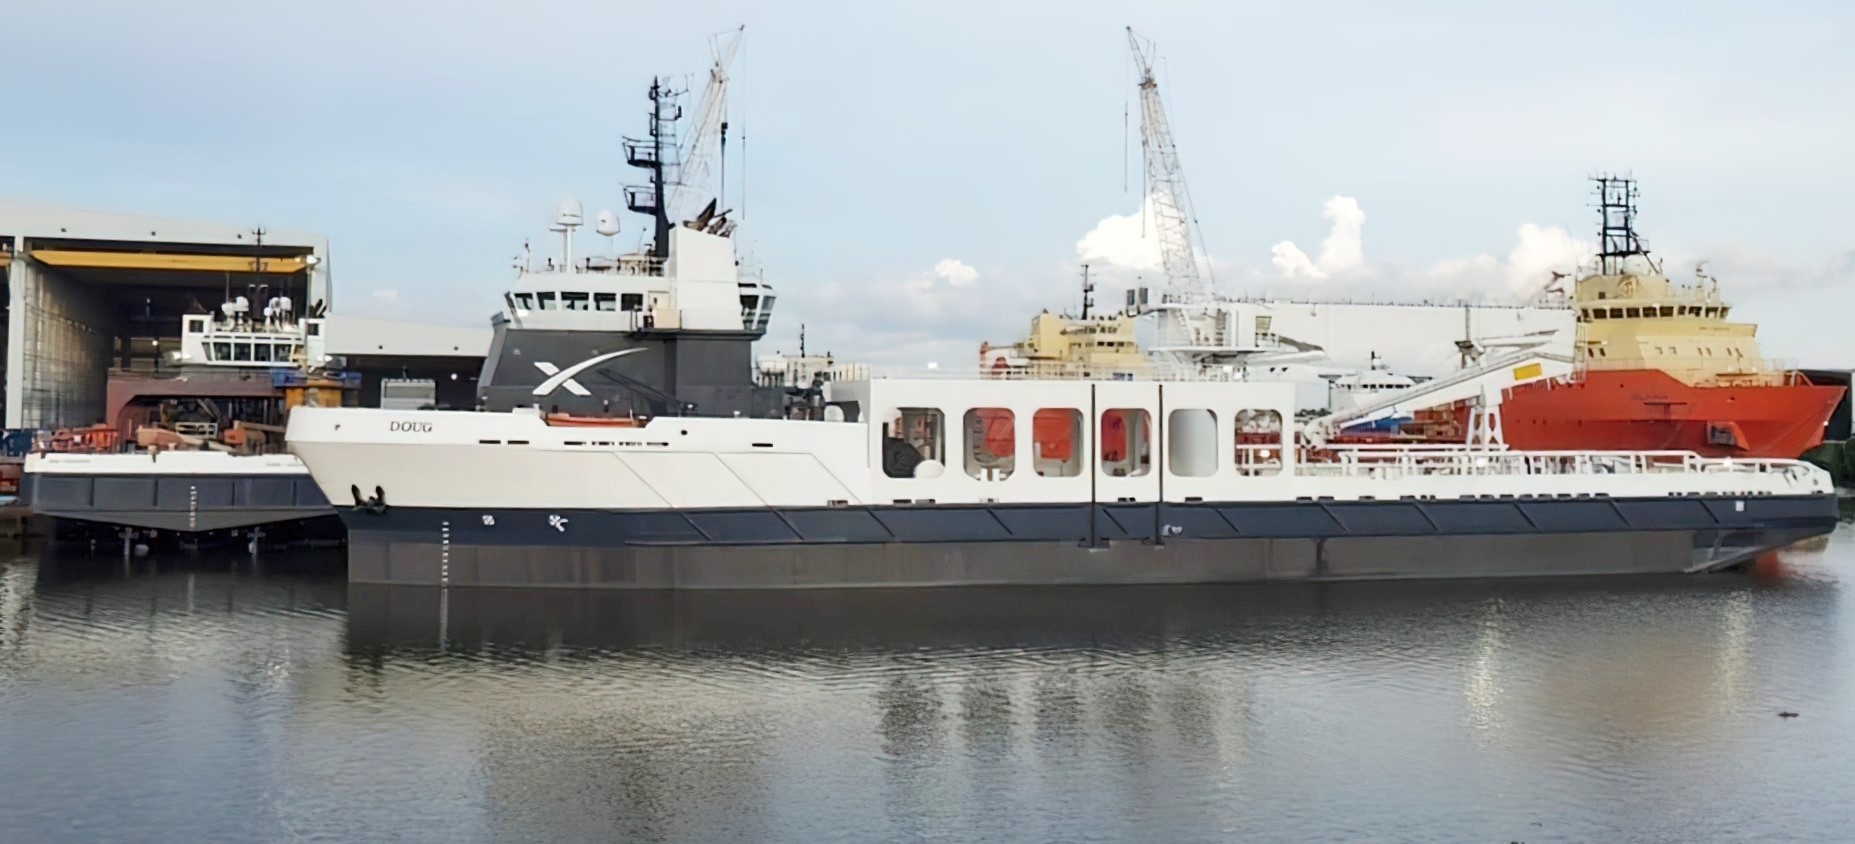 SpaceX Bob and Doug new rocket recovery ships (Facebook) 1 crop